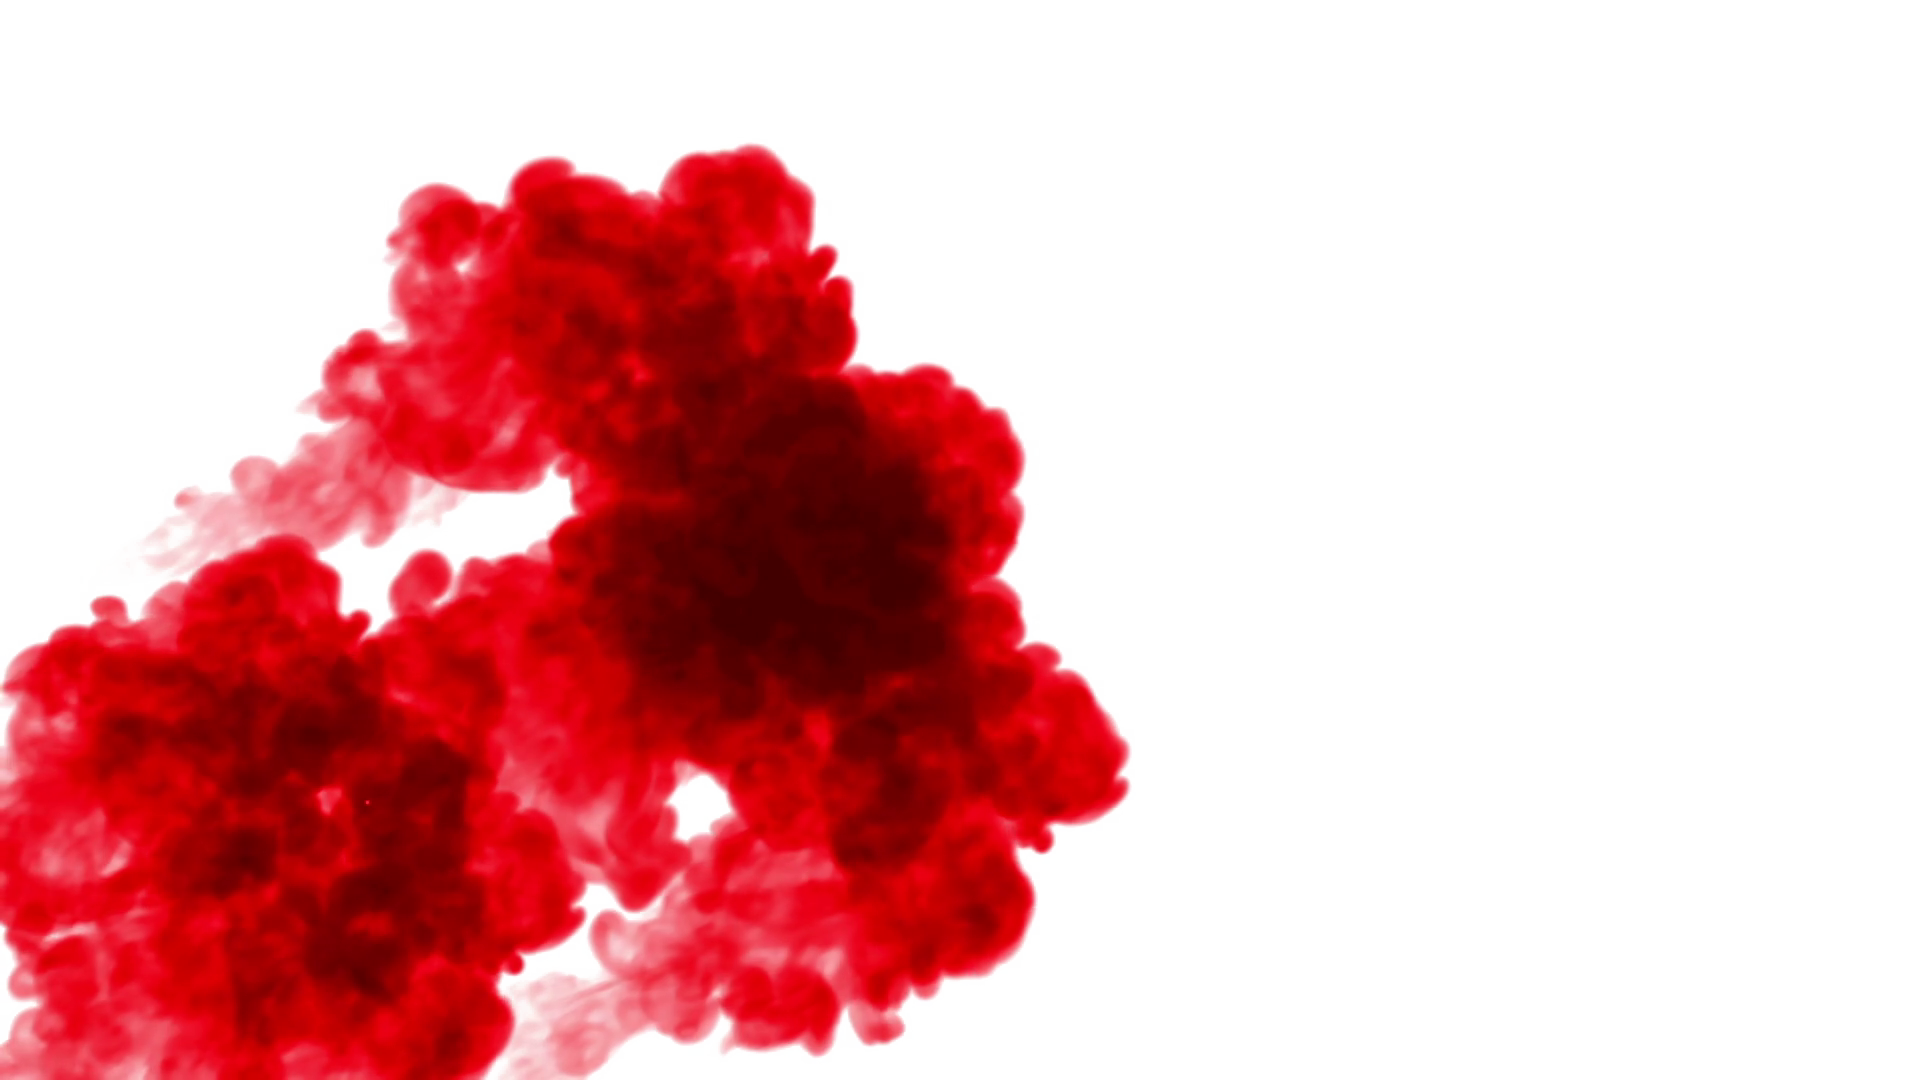 Image free download picture. Explosion smoke png